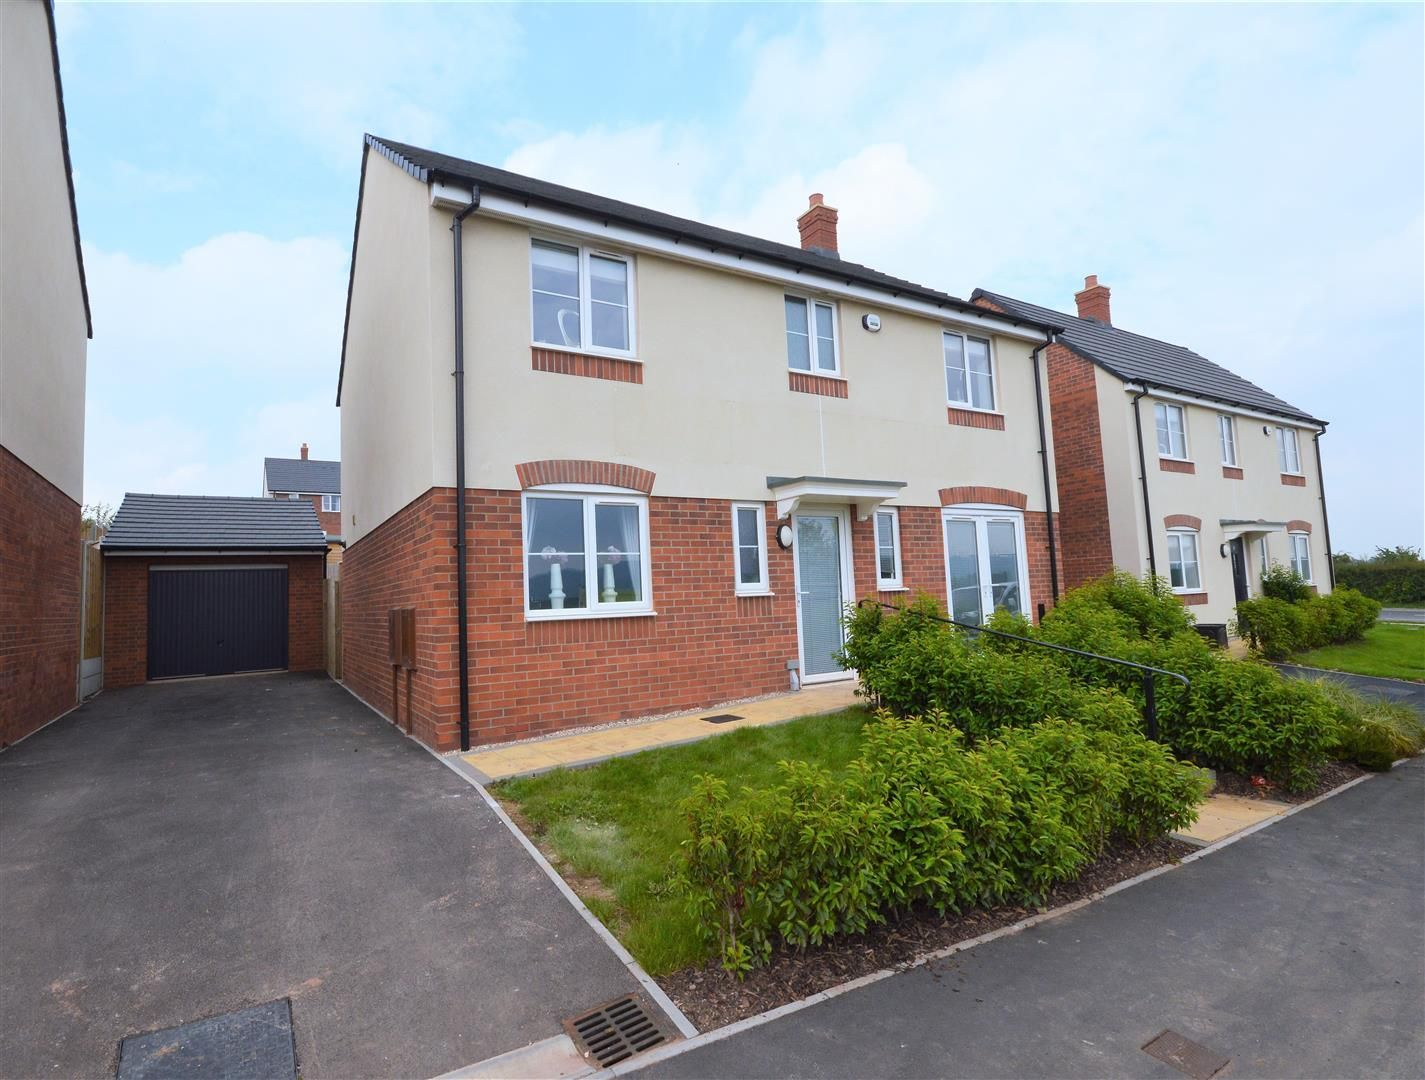 4 bed detached for sale in Bartestree 1